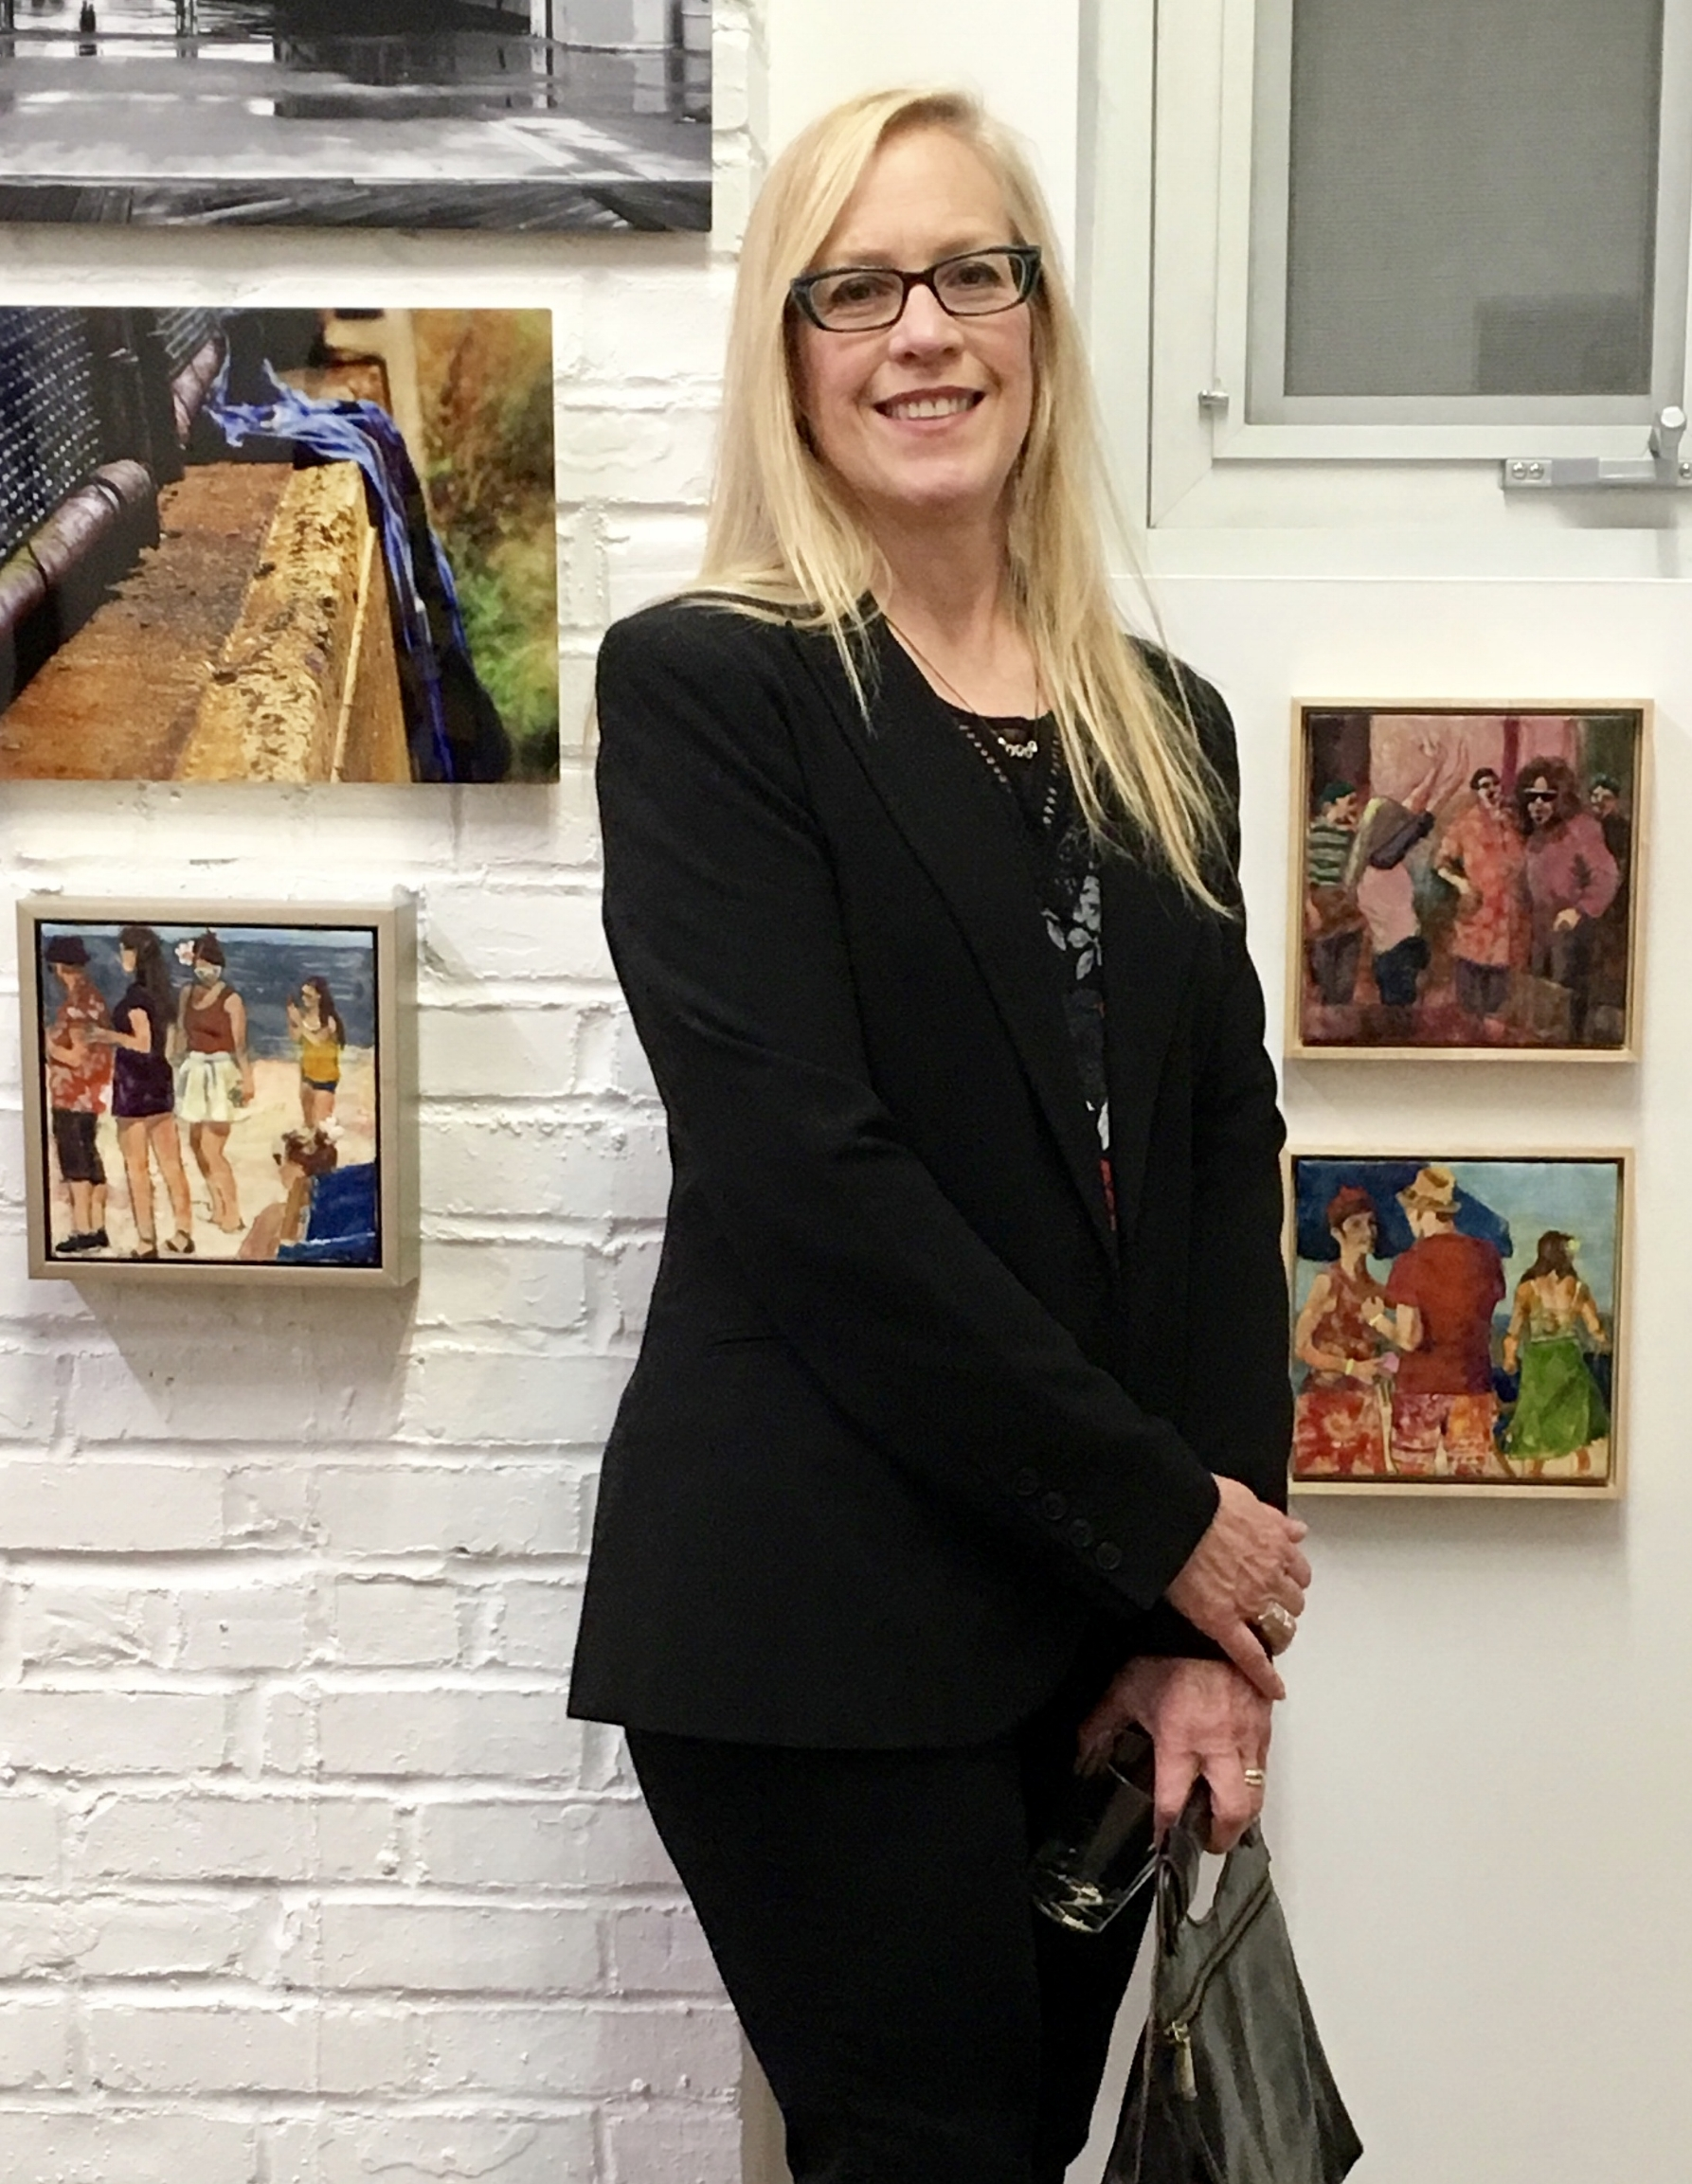 The artist pictured with 3 encaustics among other work at Open Orange.